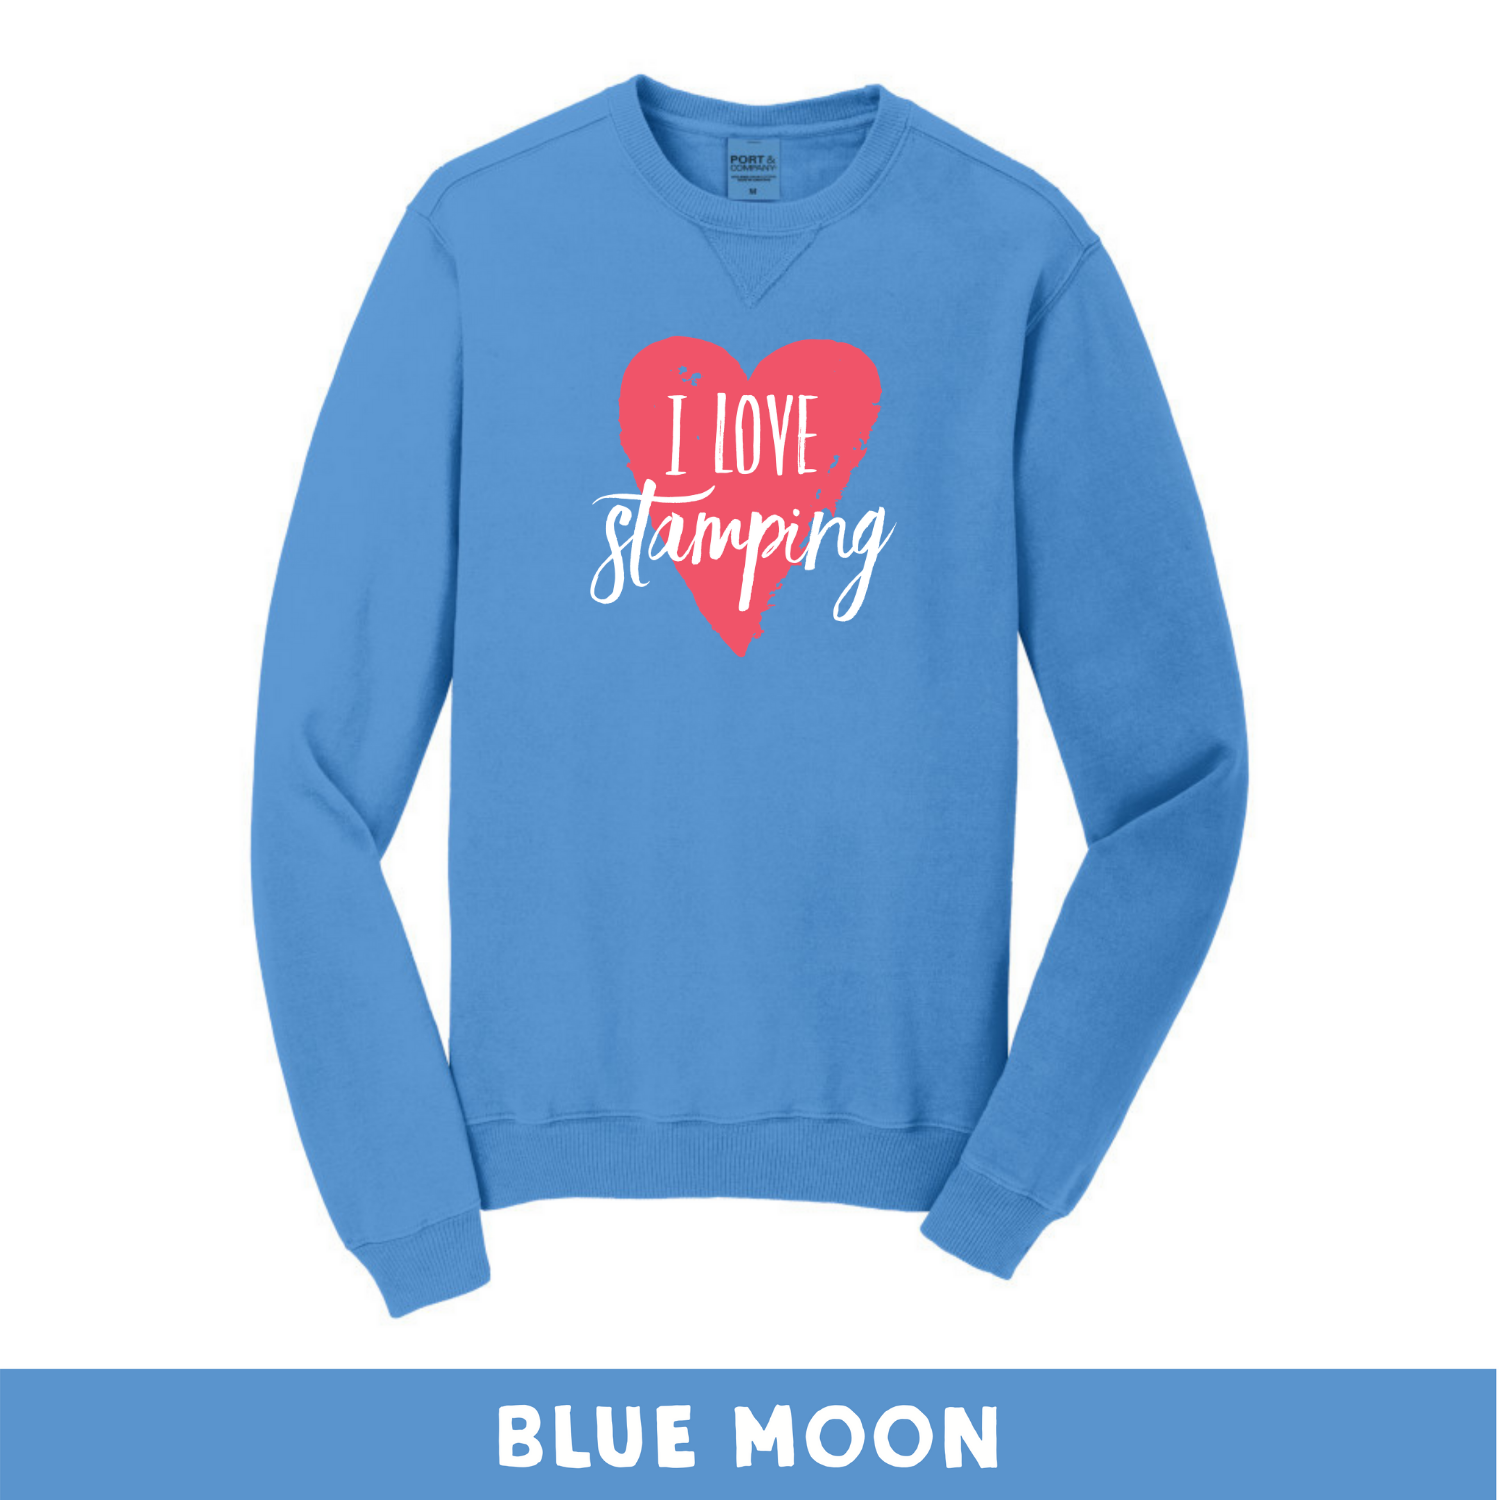 Blue Moon - Beach Wash Unisex Sweatshirt - I Love Stamping